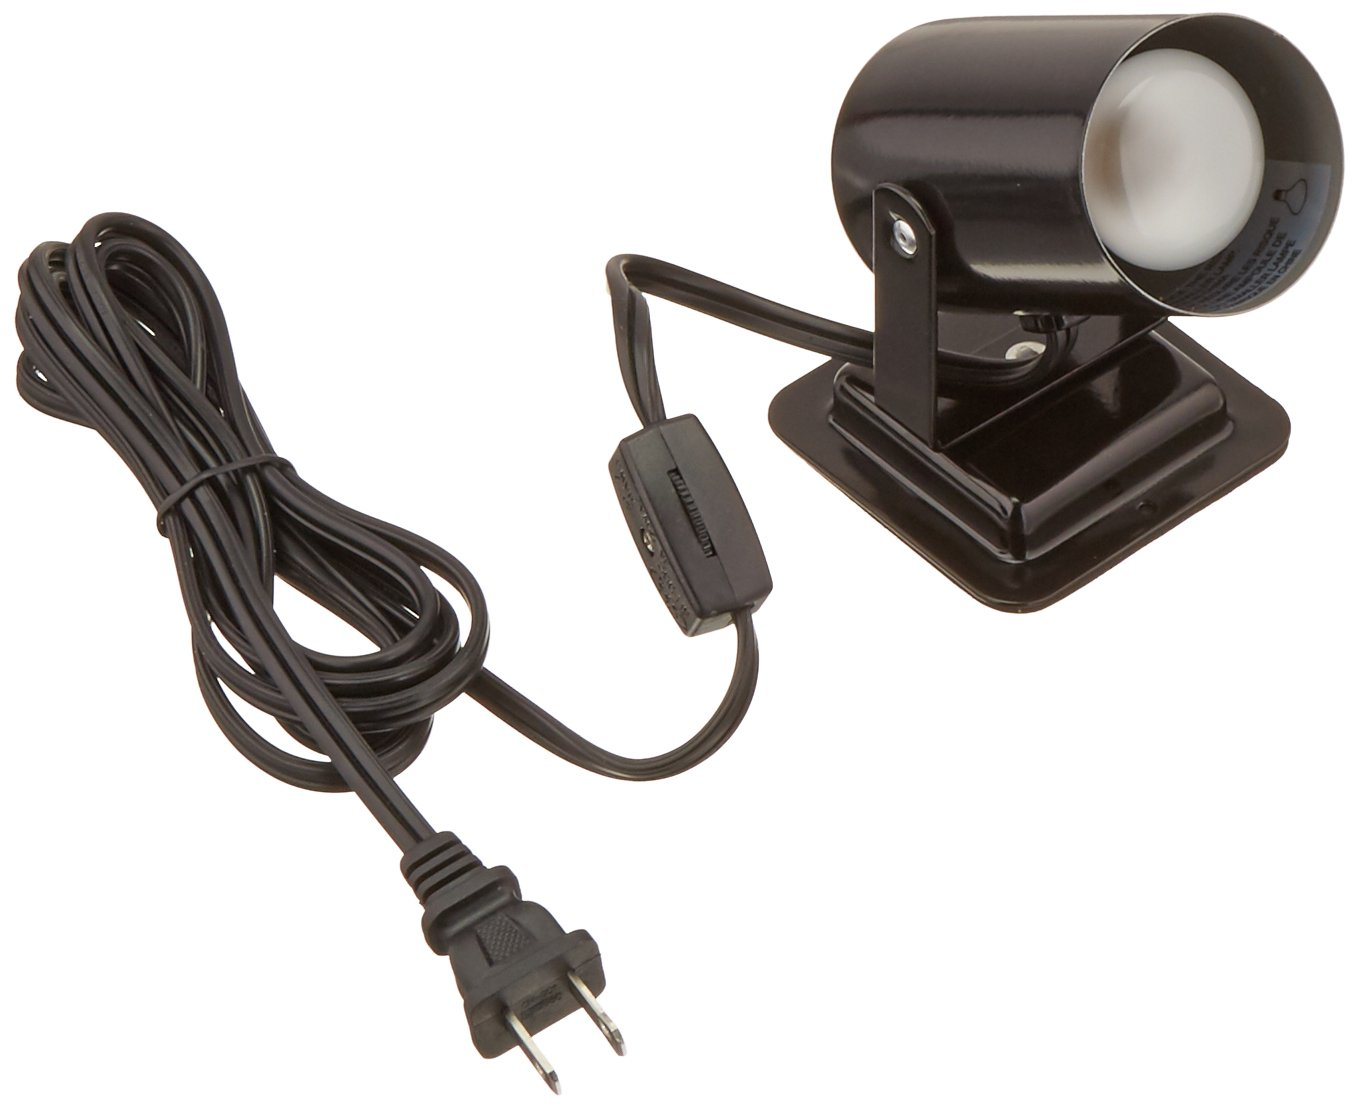 Lite Source LS-117BLK 1-Light Track Head with Black Metal Shades, Black Finish by Lite Source